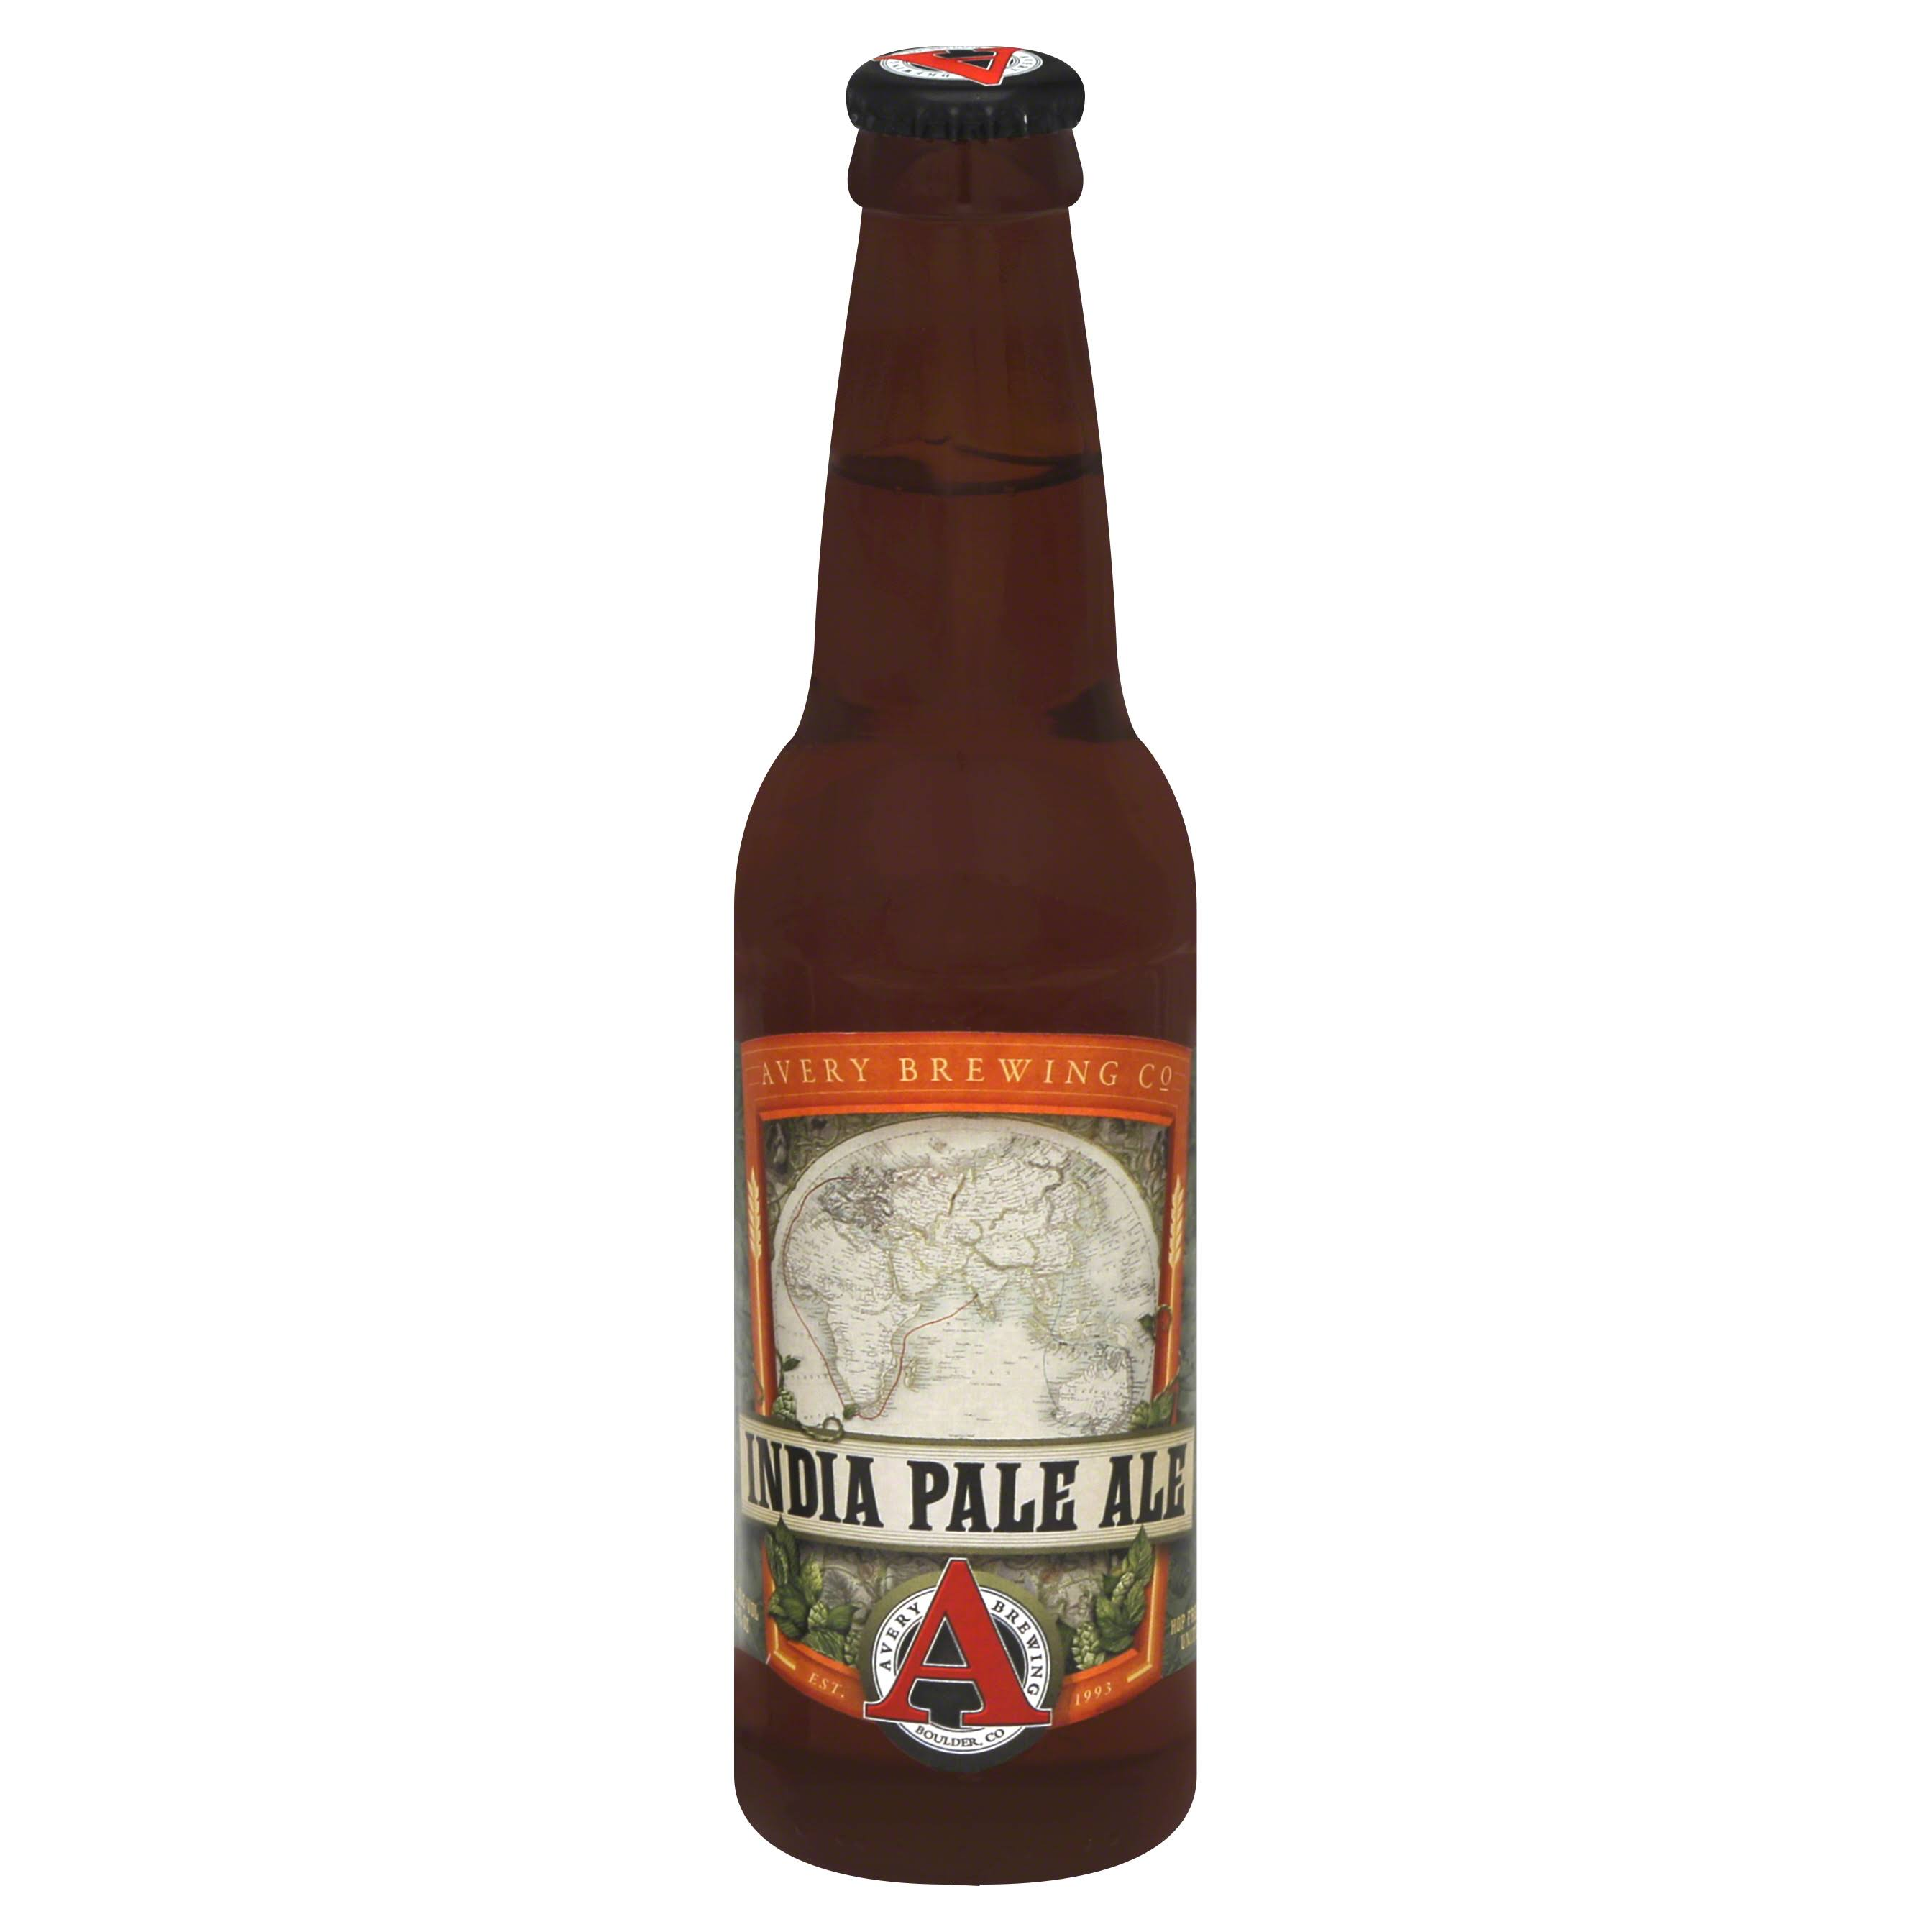 Avery Brewing Ale, India Pale - 12 fl oz